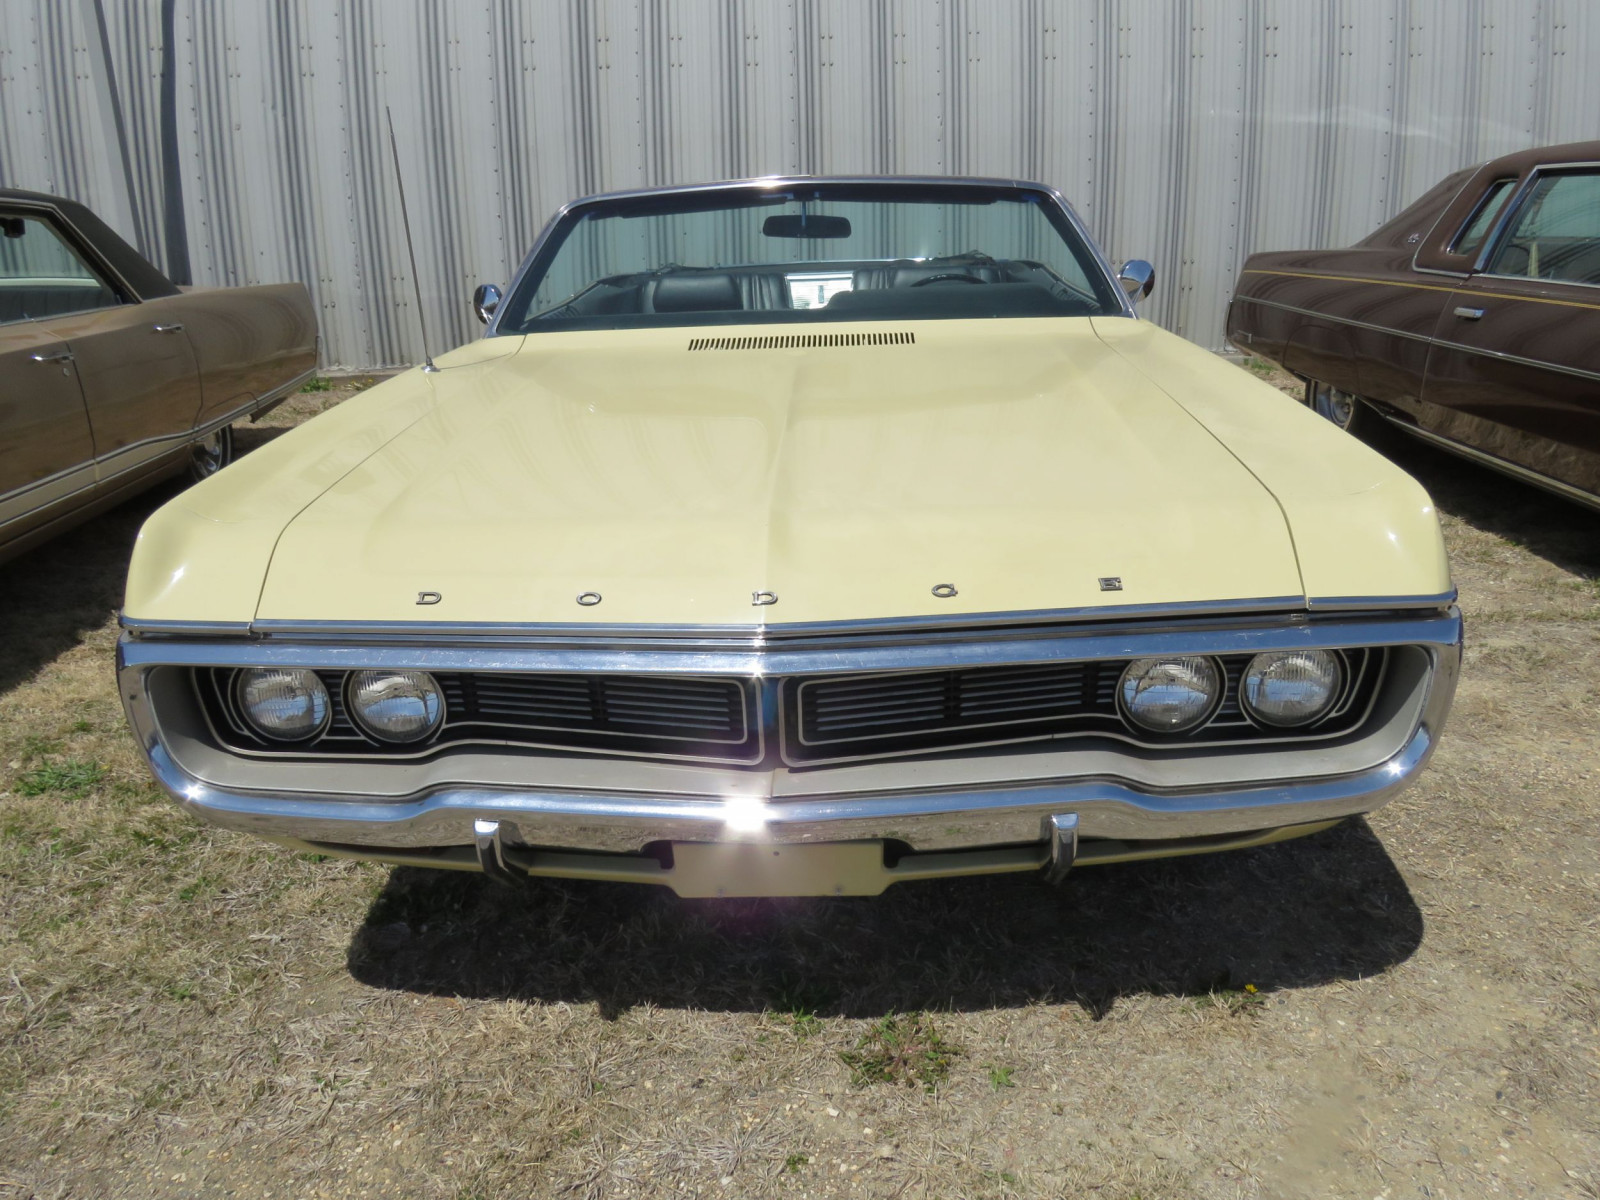 Rare 1970 Dodge Polara Convertible - Image 2